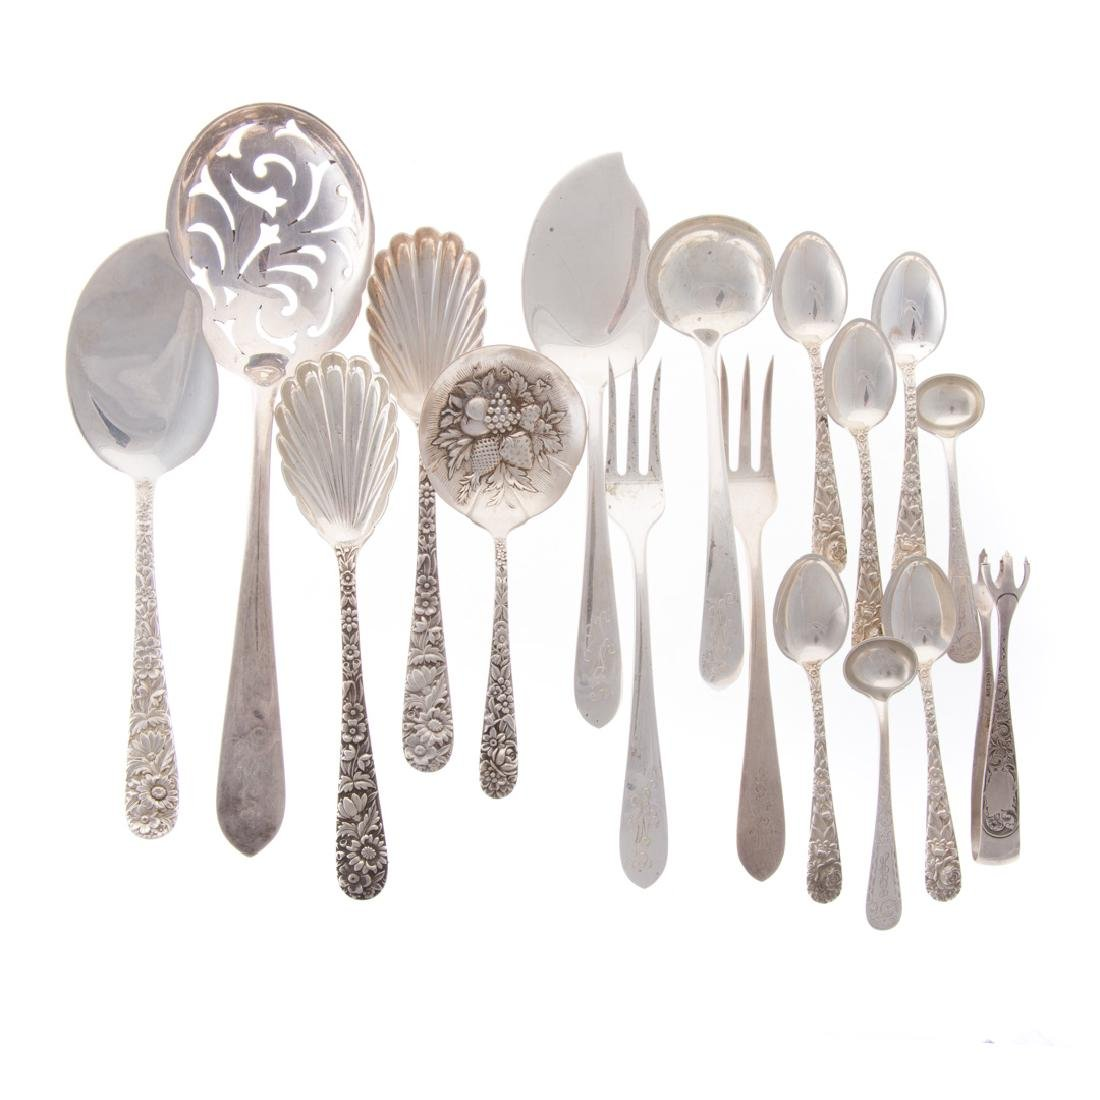 Collection of Kirk sterling silver flatware